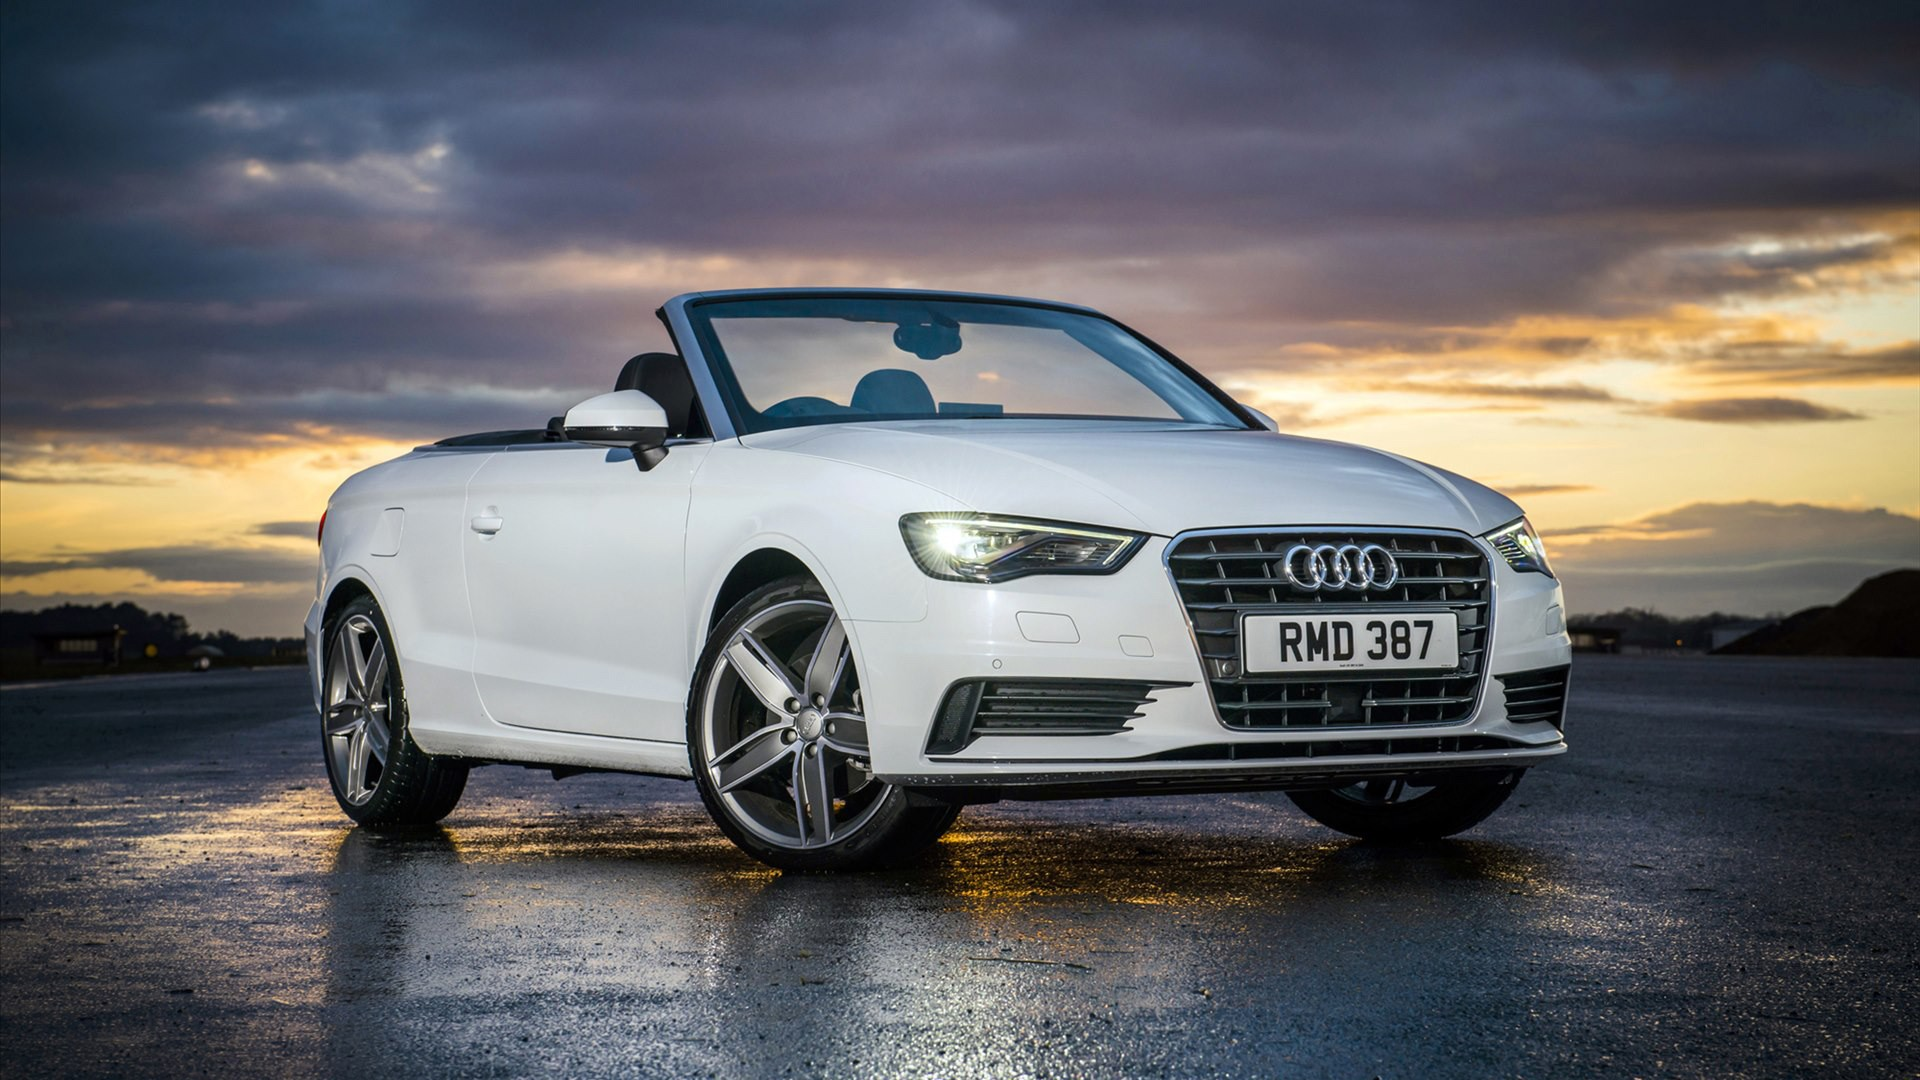 2015 Audi A3 Cabriolet Sport Wallpaper Hd Car Wallpapers